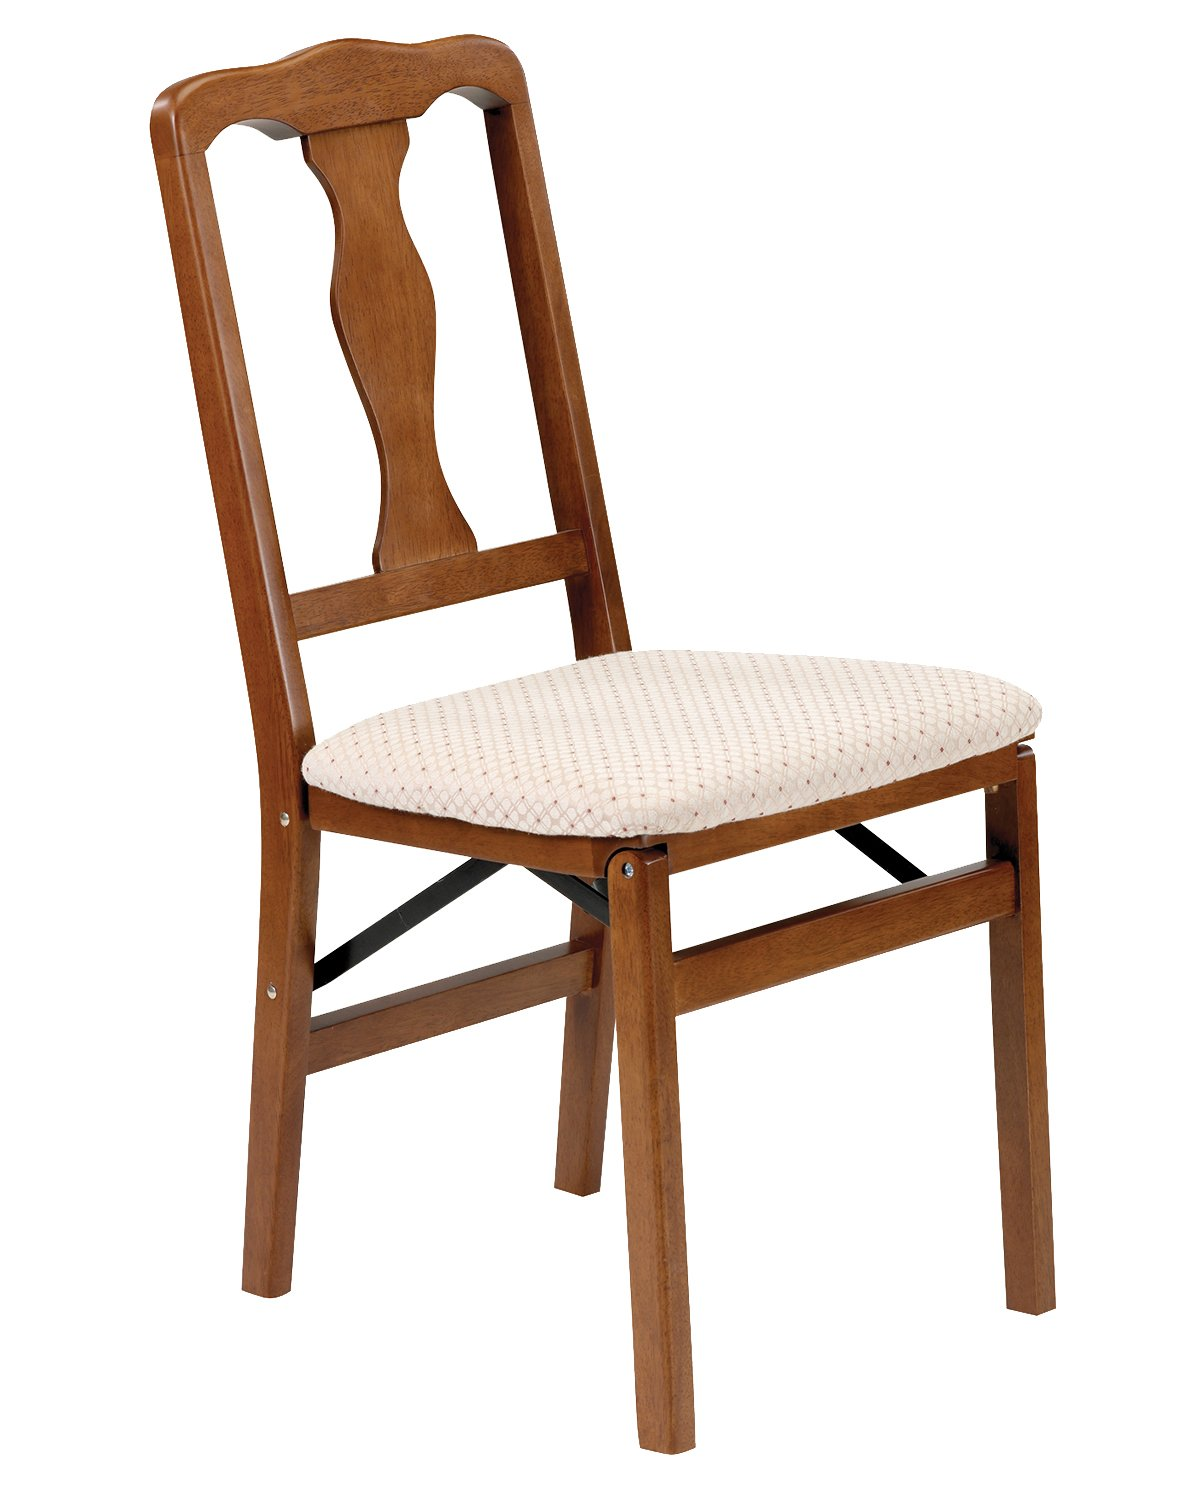 Stakmore Queen Anne Folding Chair Finish, Set of 2, Fruitwood